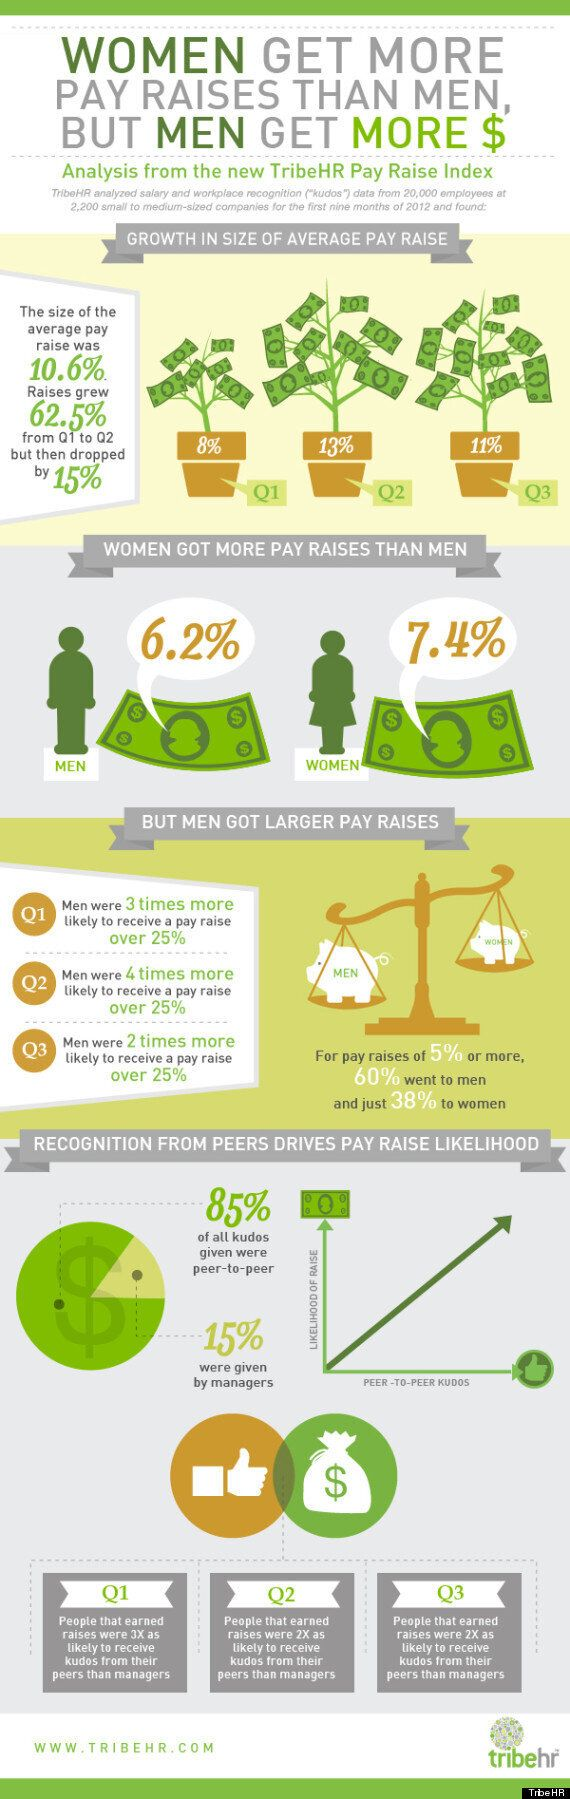 Gender Wage Gap: Men Get Bigger Raises Than Women At Small And Medium Businesses, Index